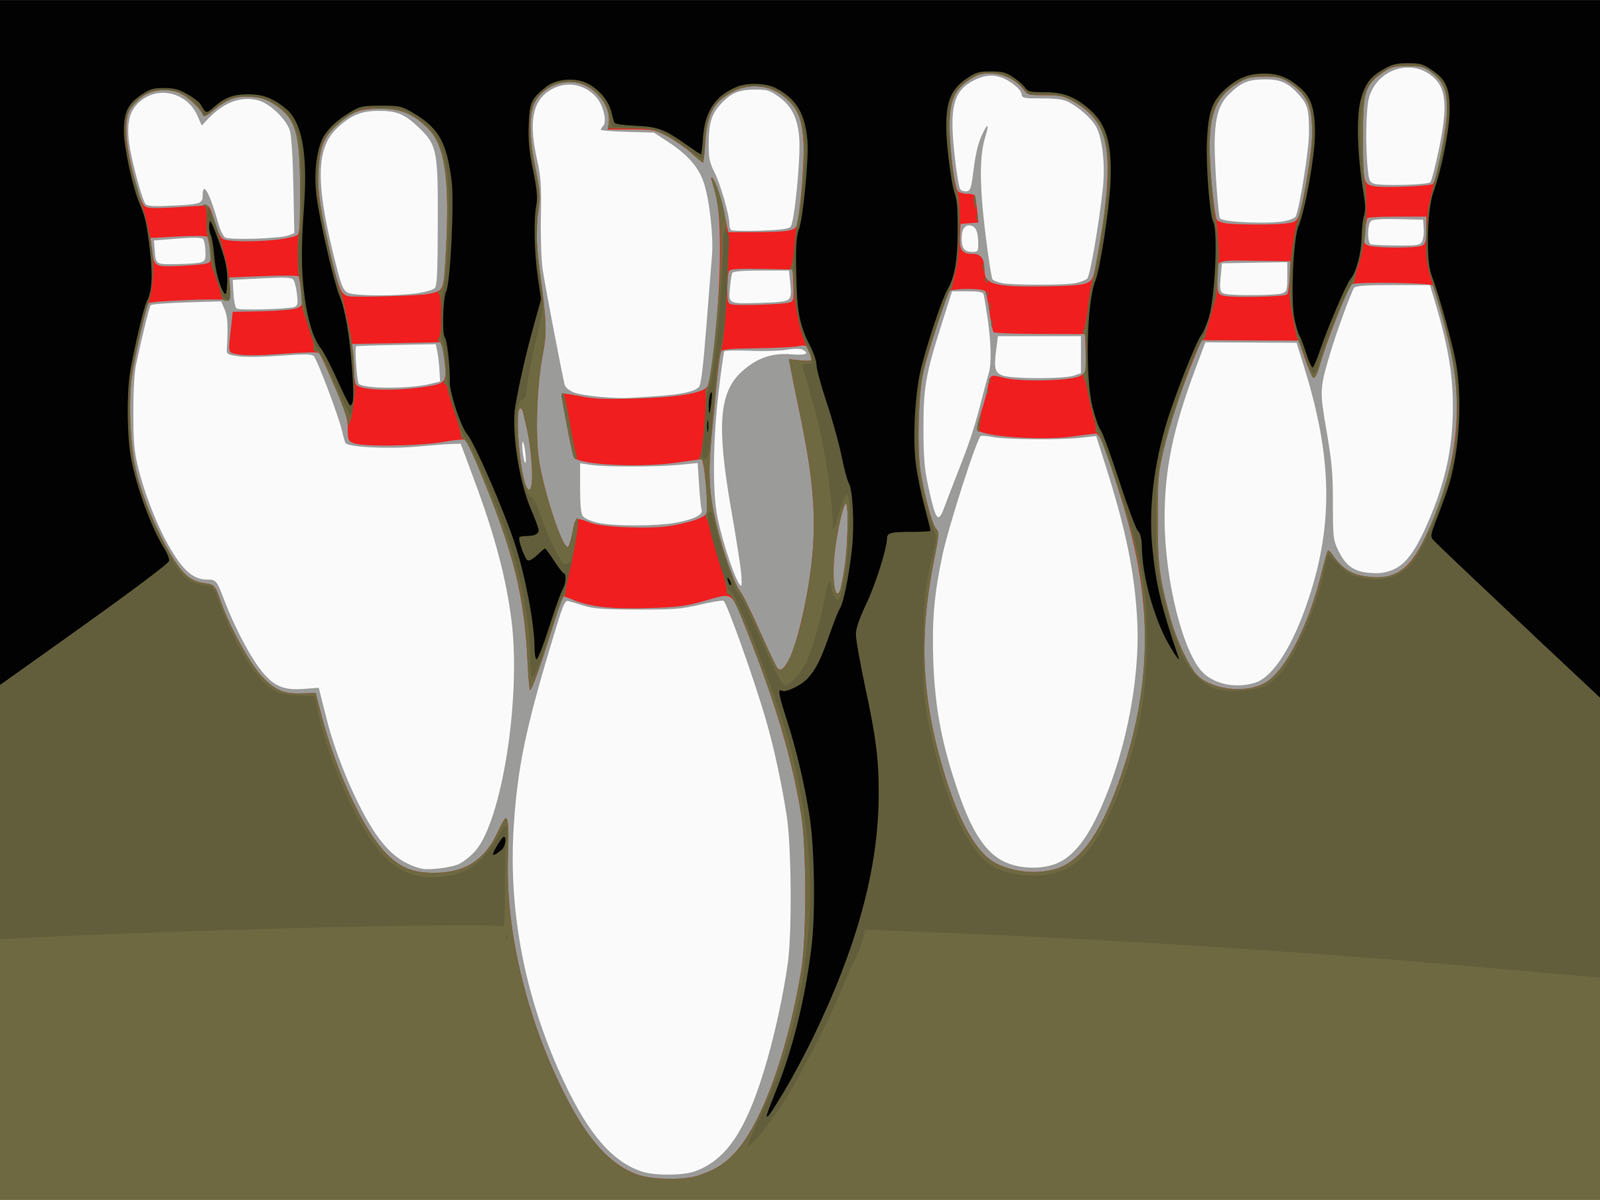 Bowling Ten Pins PPT Backgrounds